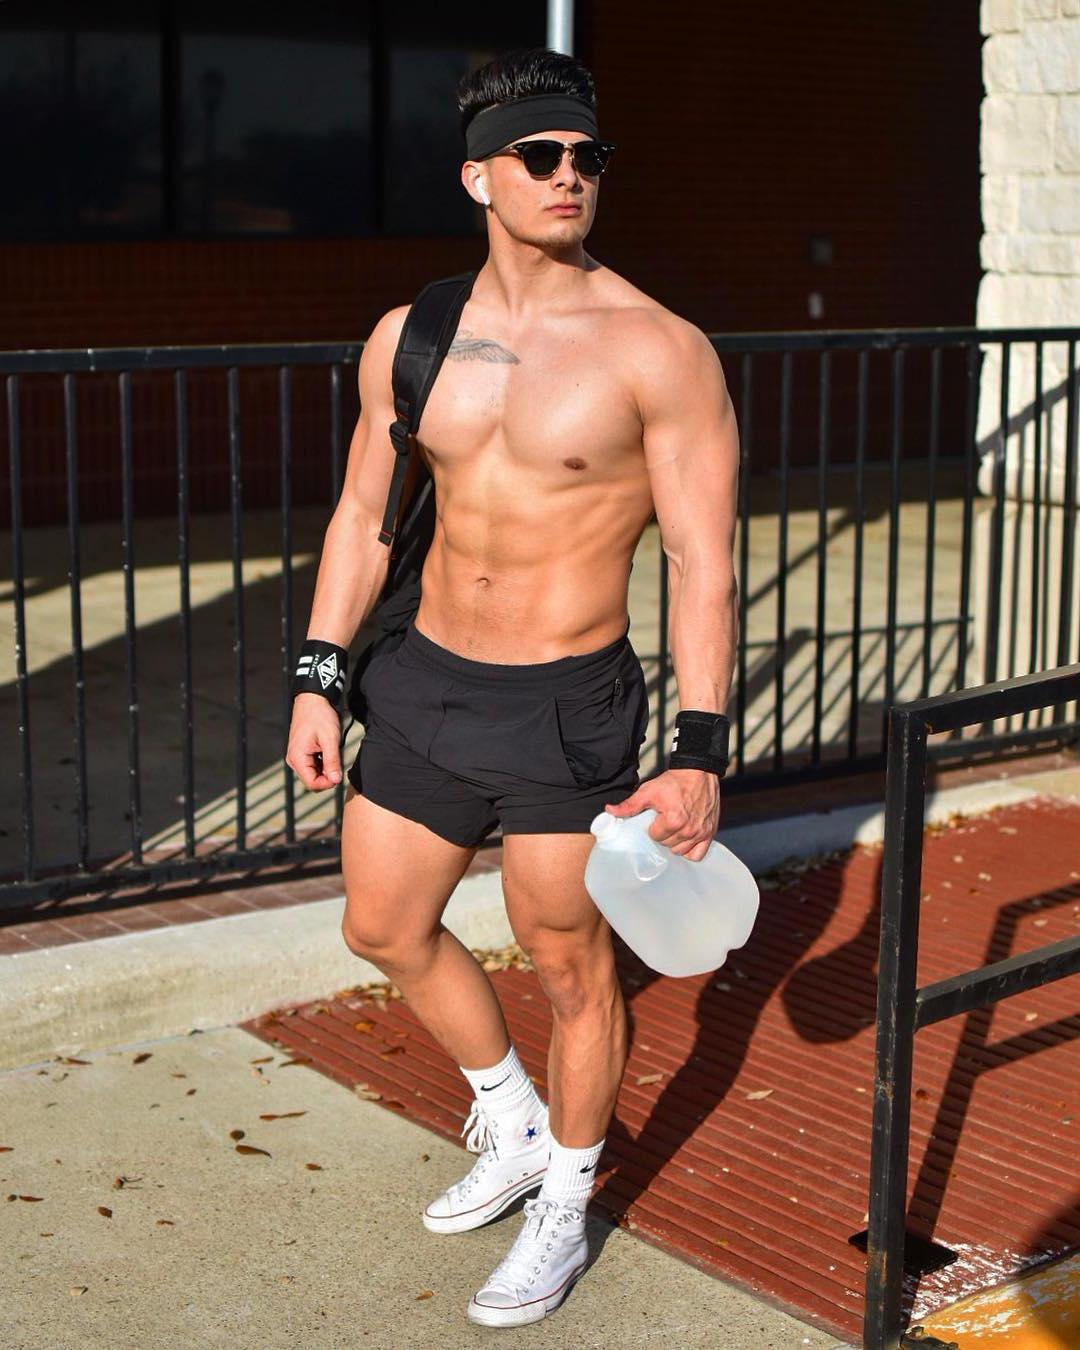 fit-young-bare-chest-bro-walking-city-sunglasses-summertime-gays